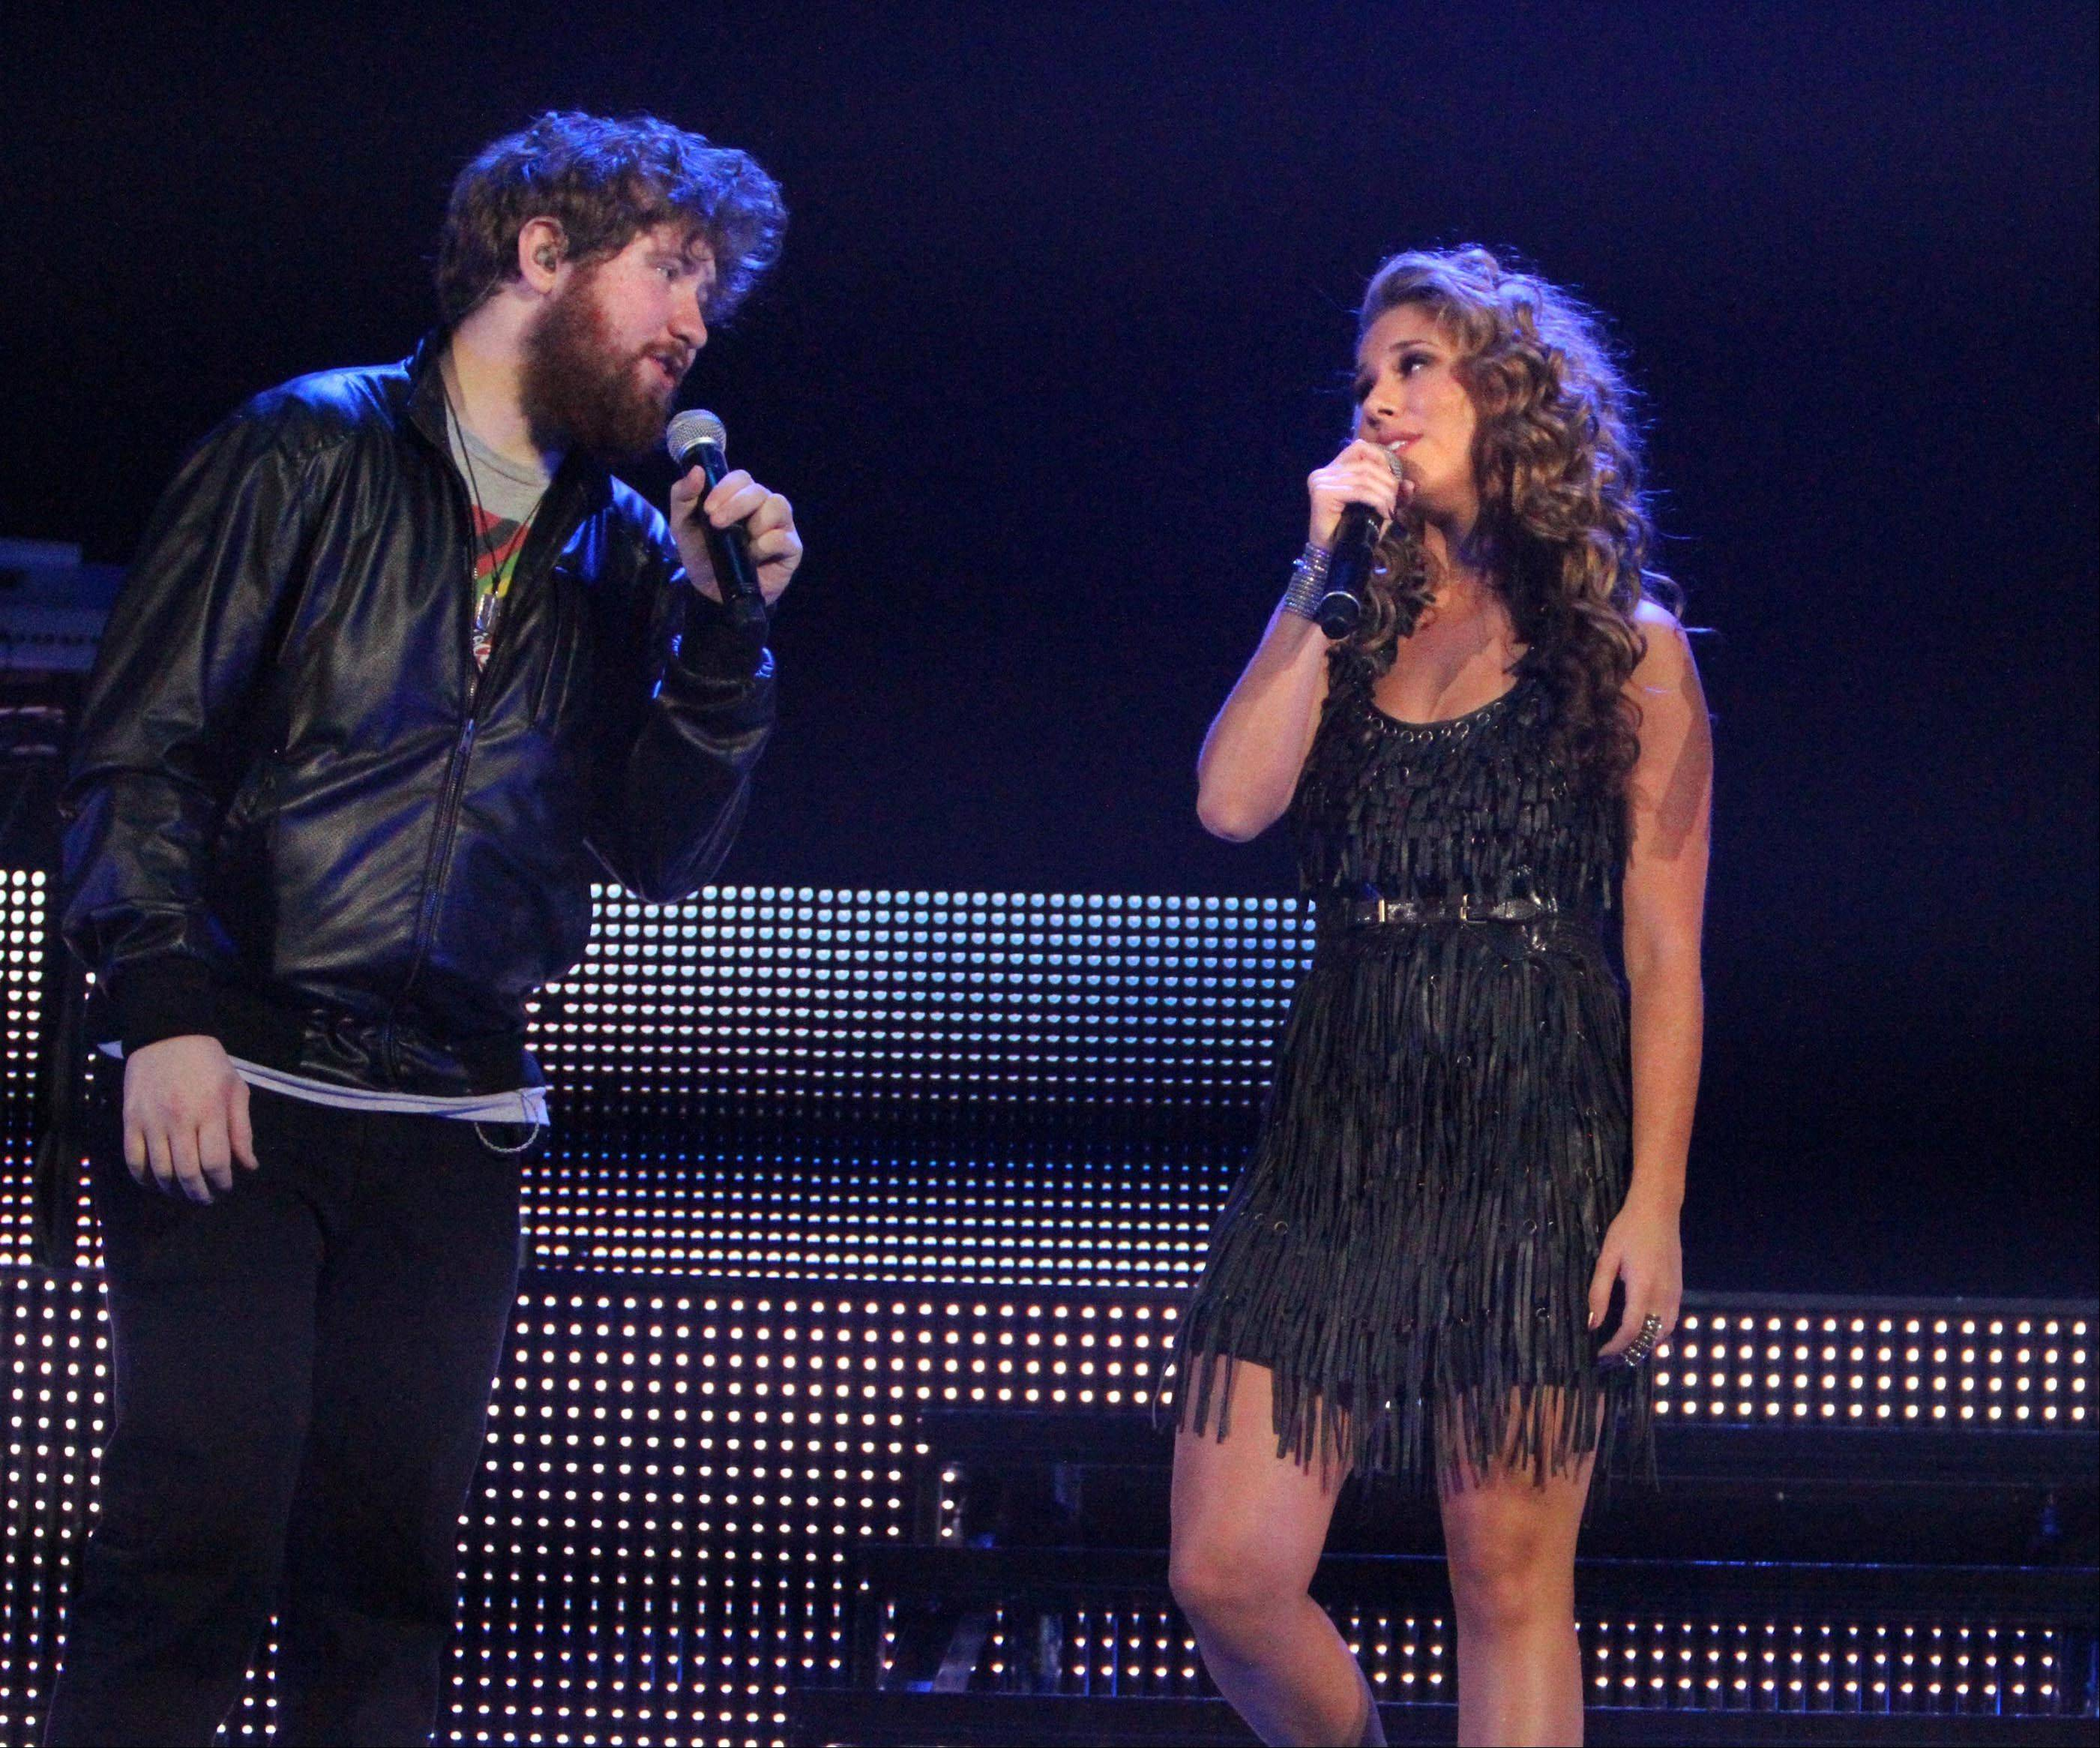 Casey Abrams and Haley Reinhart perform during the American Idol concert.